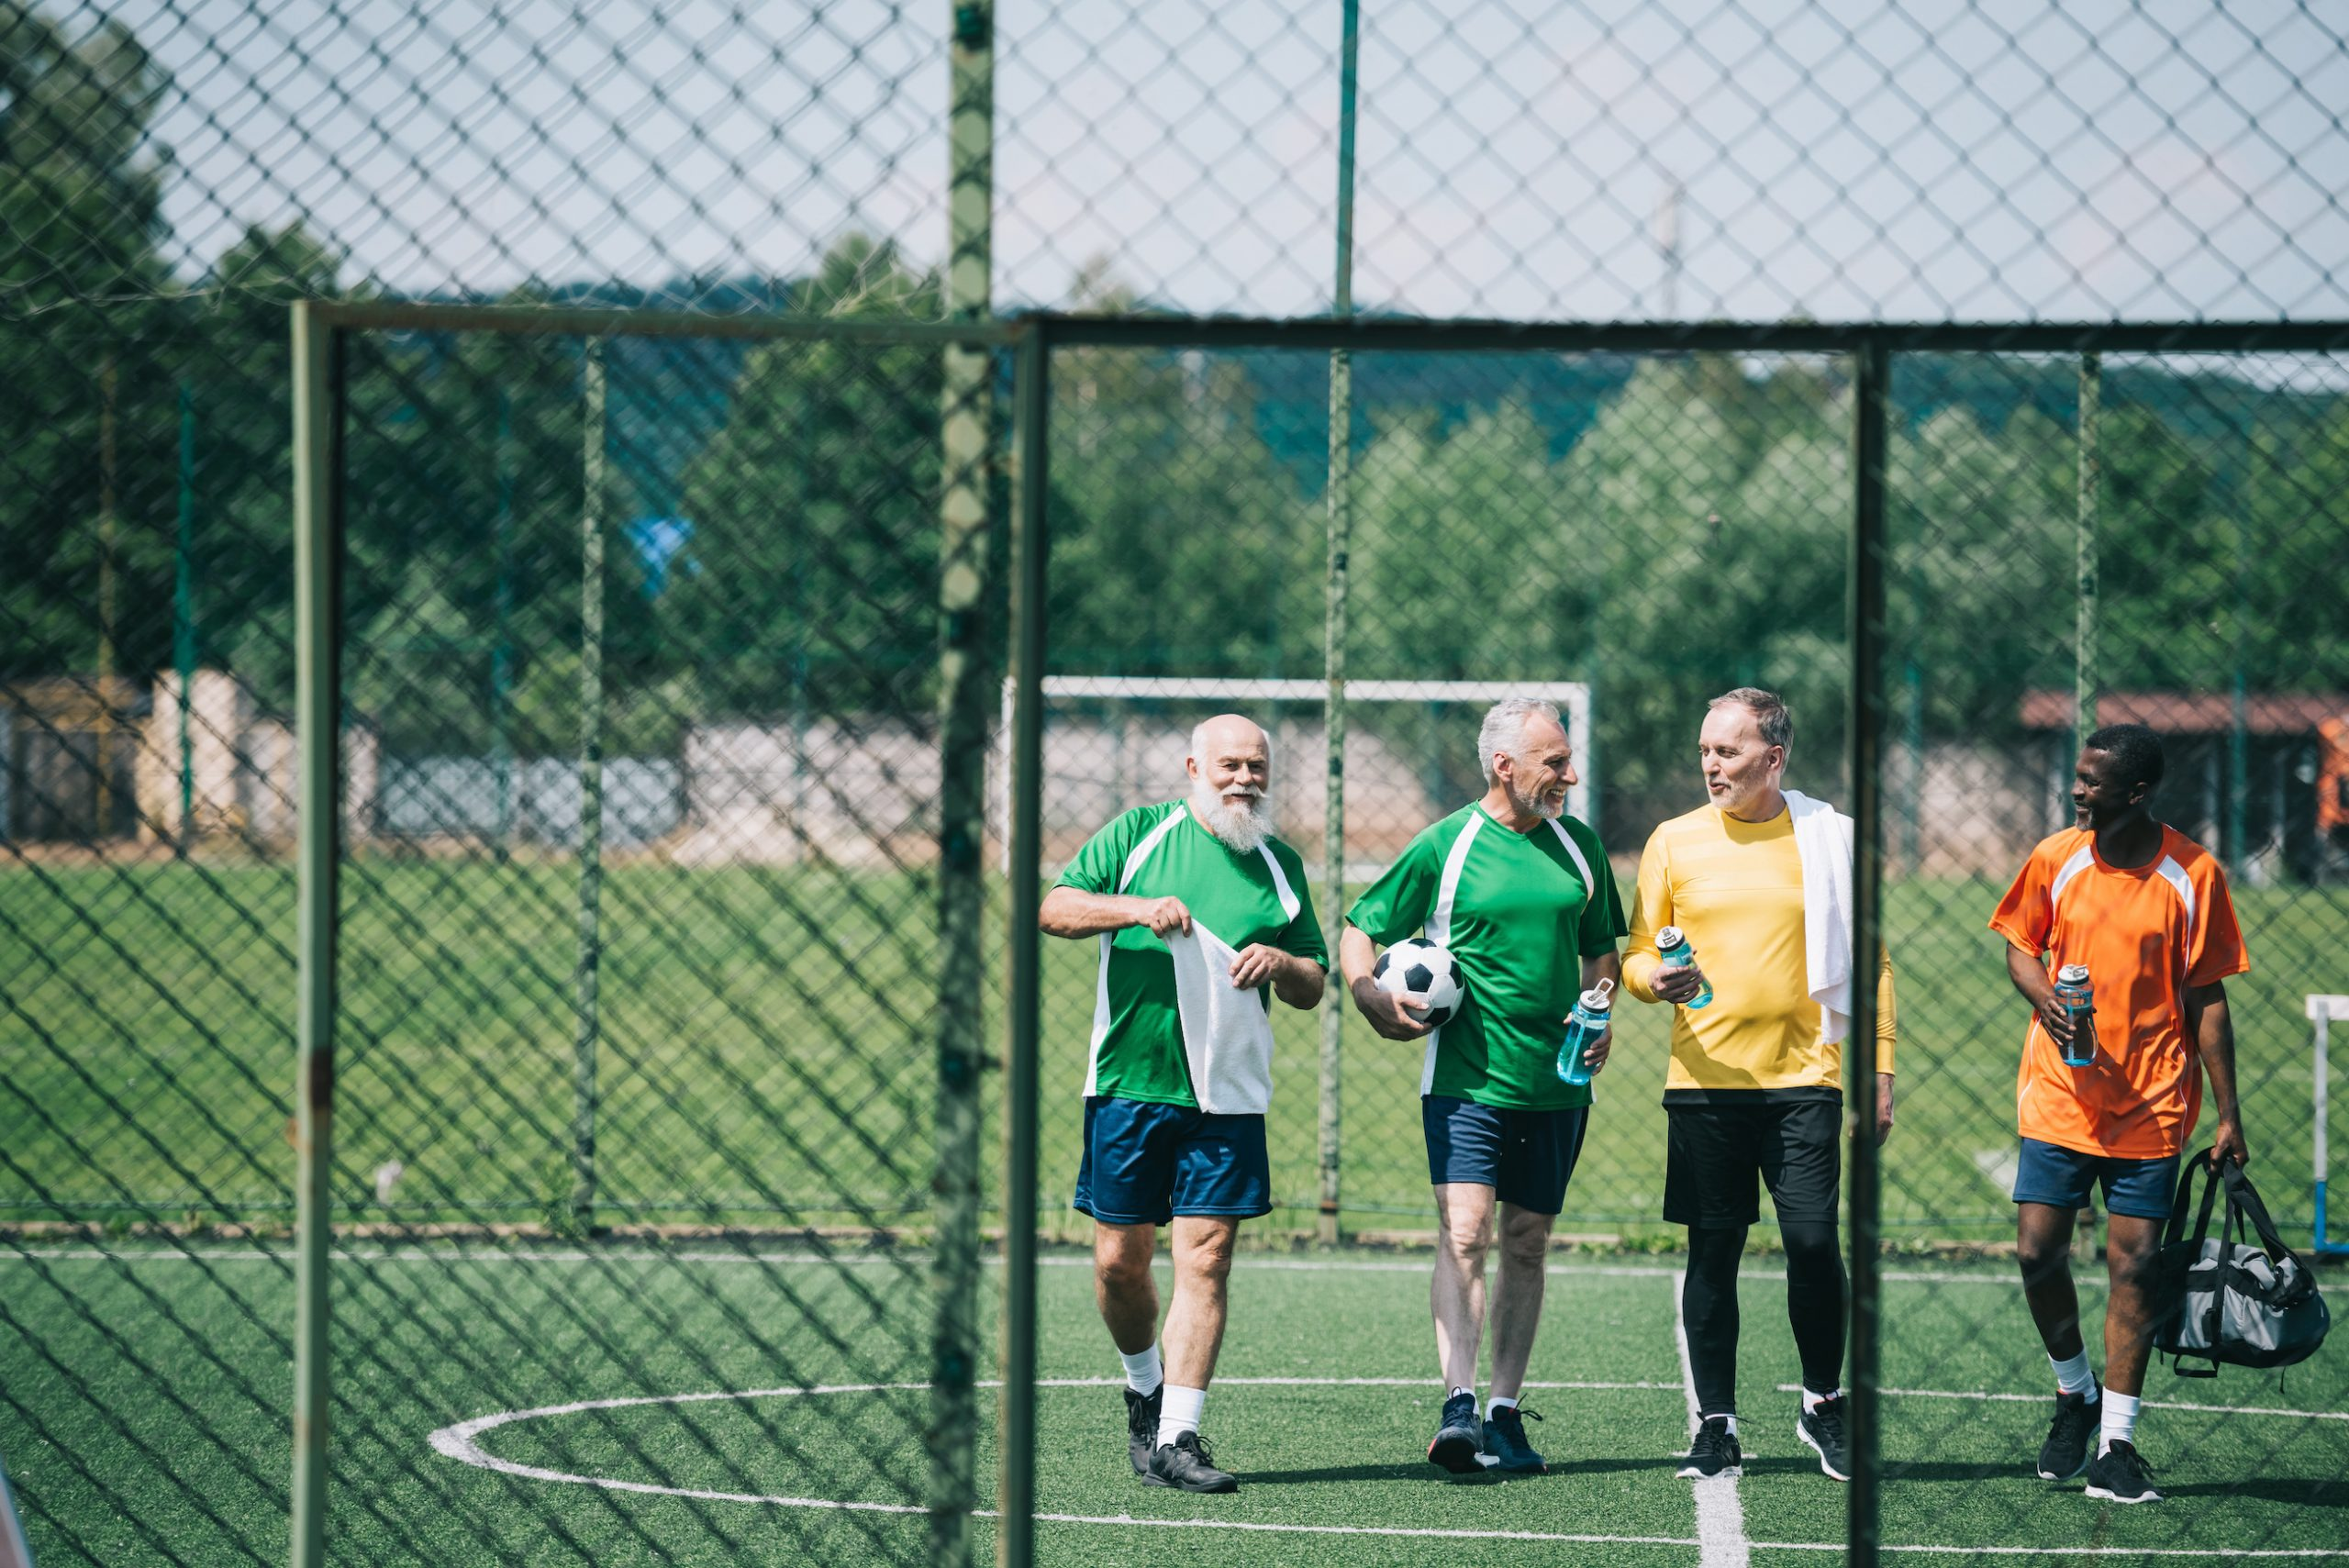 Scottish sport encouraged to grasp opportunity to engage older people